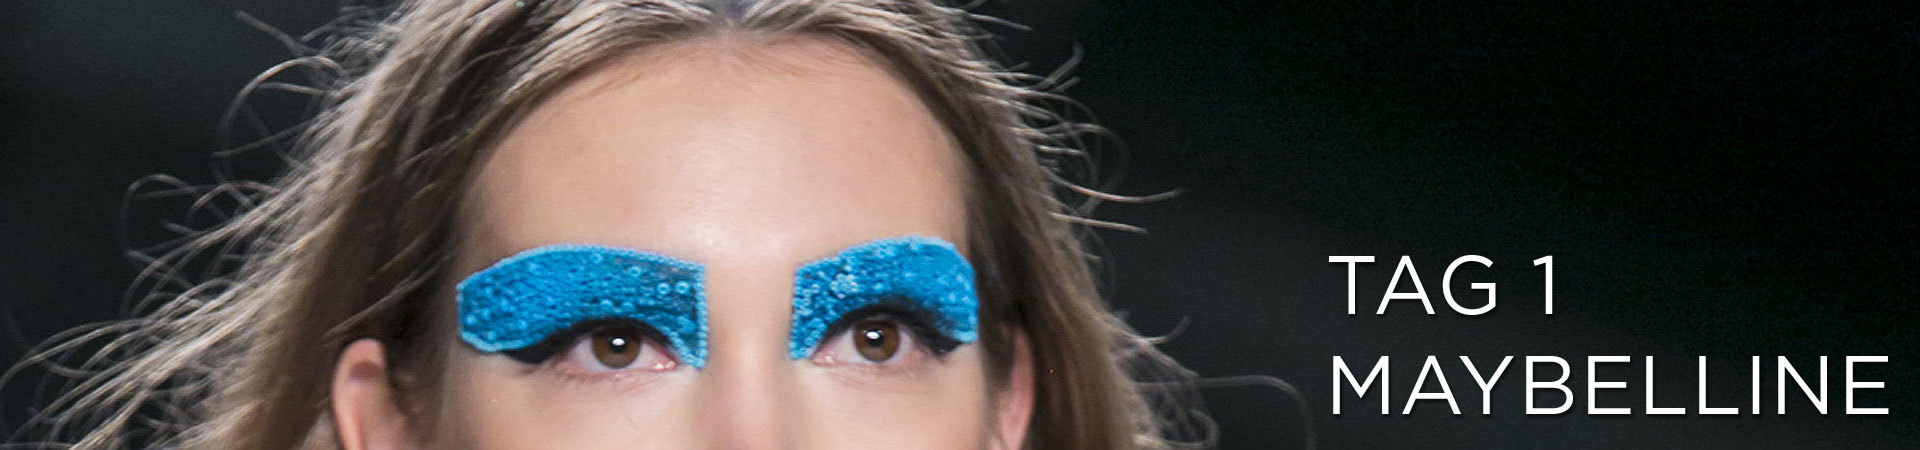 Tag 1 auf der Berliner Fashion Week: Maybelline Make-Up Runway (© Fotograf Thomas Rafalzyk)